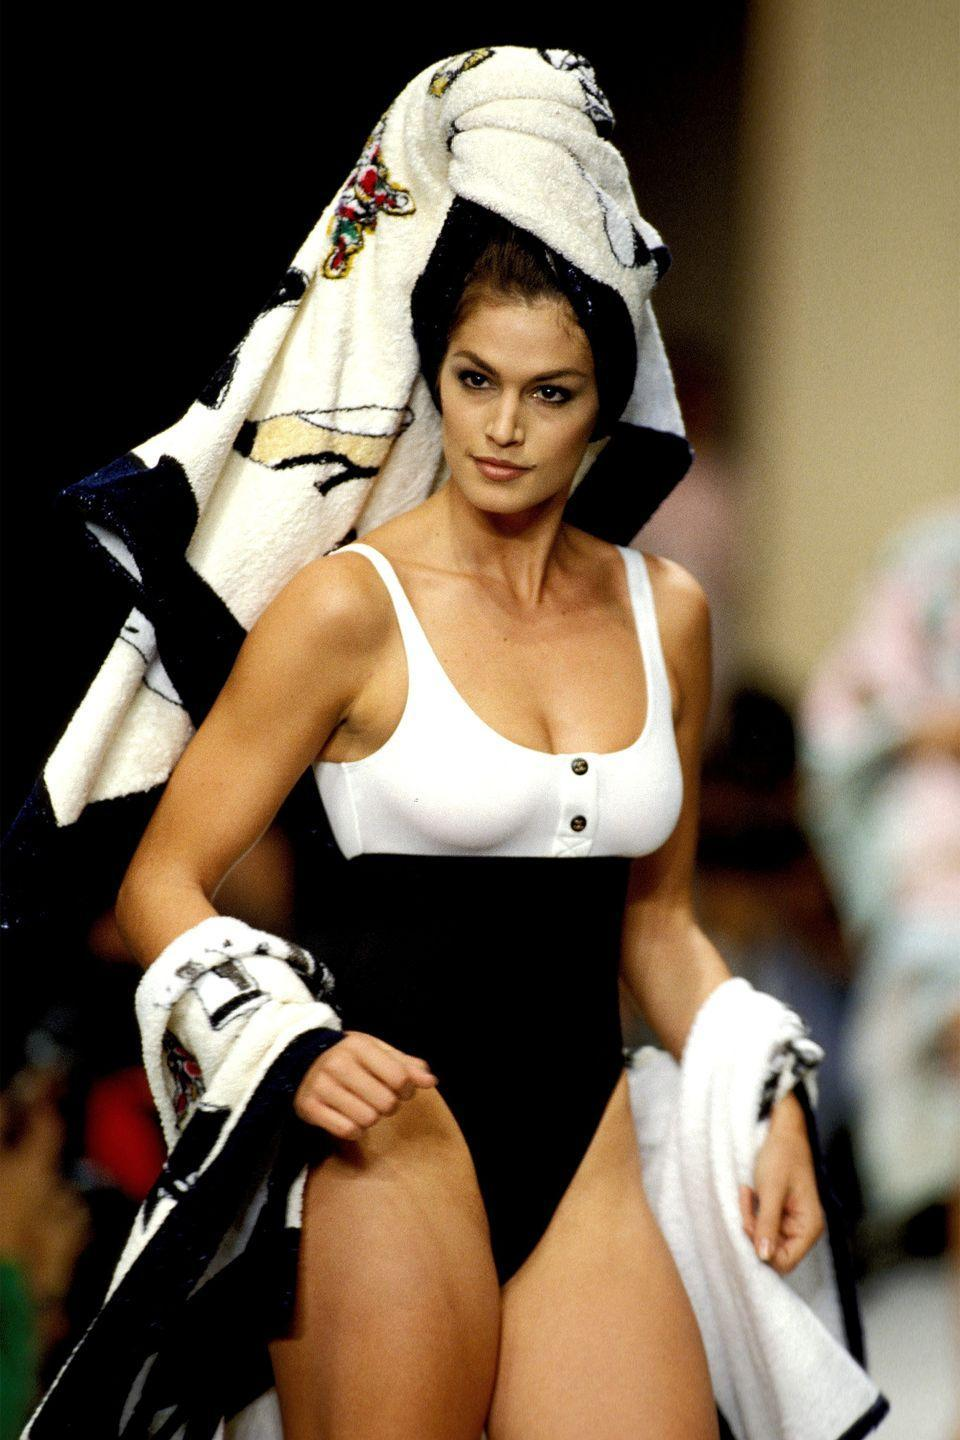 """<p>Before Crawford graced the runway and the covers of all major fashion magazines, she was a girl living in the small town of DeKalb, Illinois. She <a href=""""https://www.vanityfair.com/hollywood/2015/12/cindy-crawford-first-modeling-photo"""" rel=""""nofollow noopener"""" target=""""_blank"""" data-ylk=""""slk:recounted"""" class=""""link rapid-noclick-resp"""">recounted</a> how a poolside photo that a local photographer took of her piqued her interest in modeling. From there, she traveled to Chicago and signed with the modeling agency Elite.</p>"""